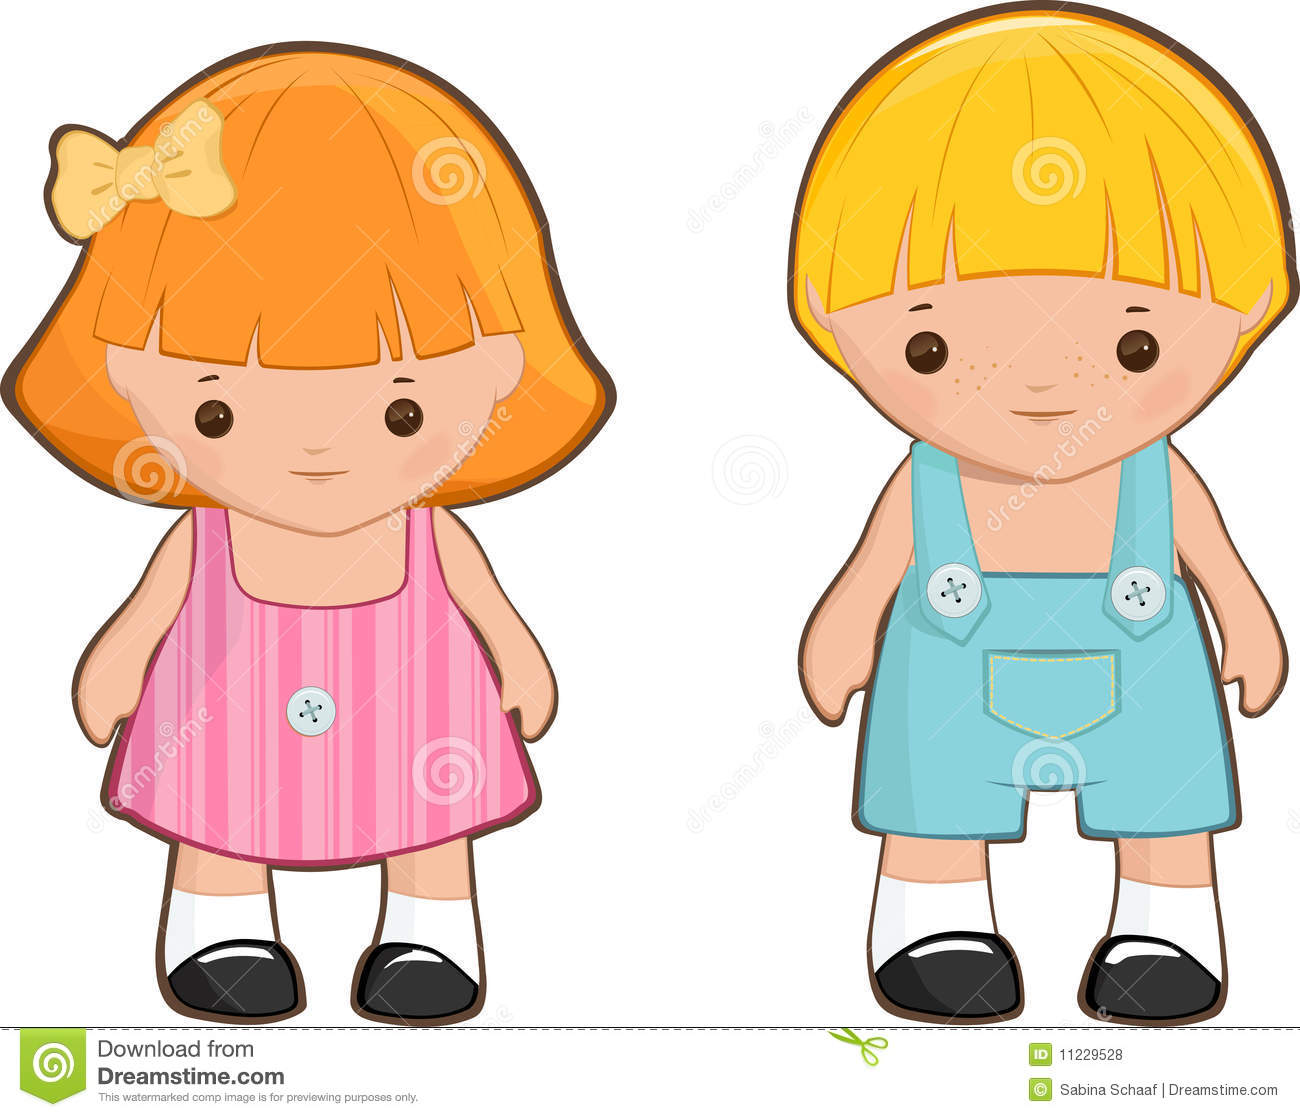 Cartoon kids royalty free stock photos image 11229528